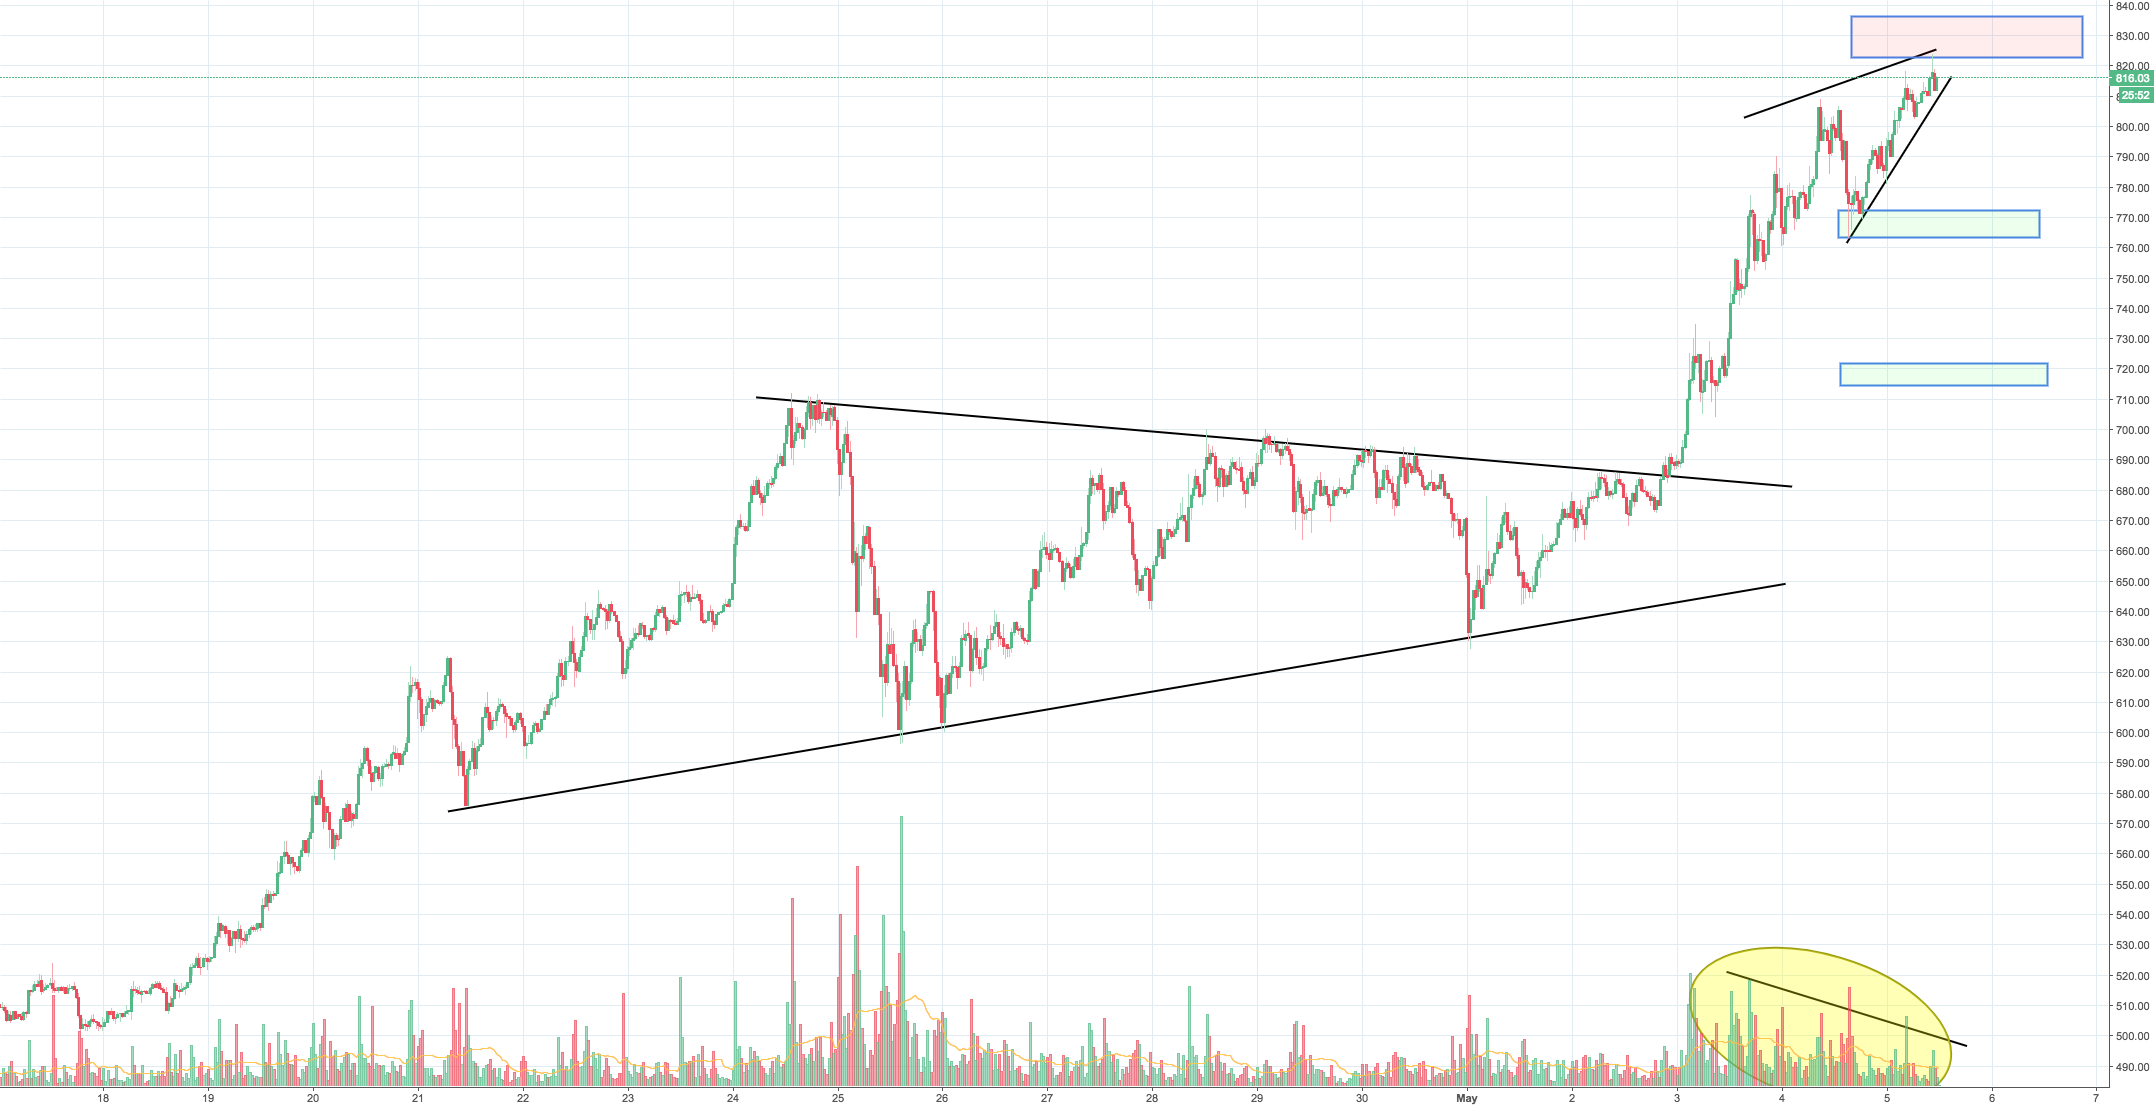 ETH big rally coming to an end? Bearish rising wedge